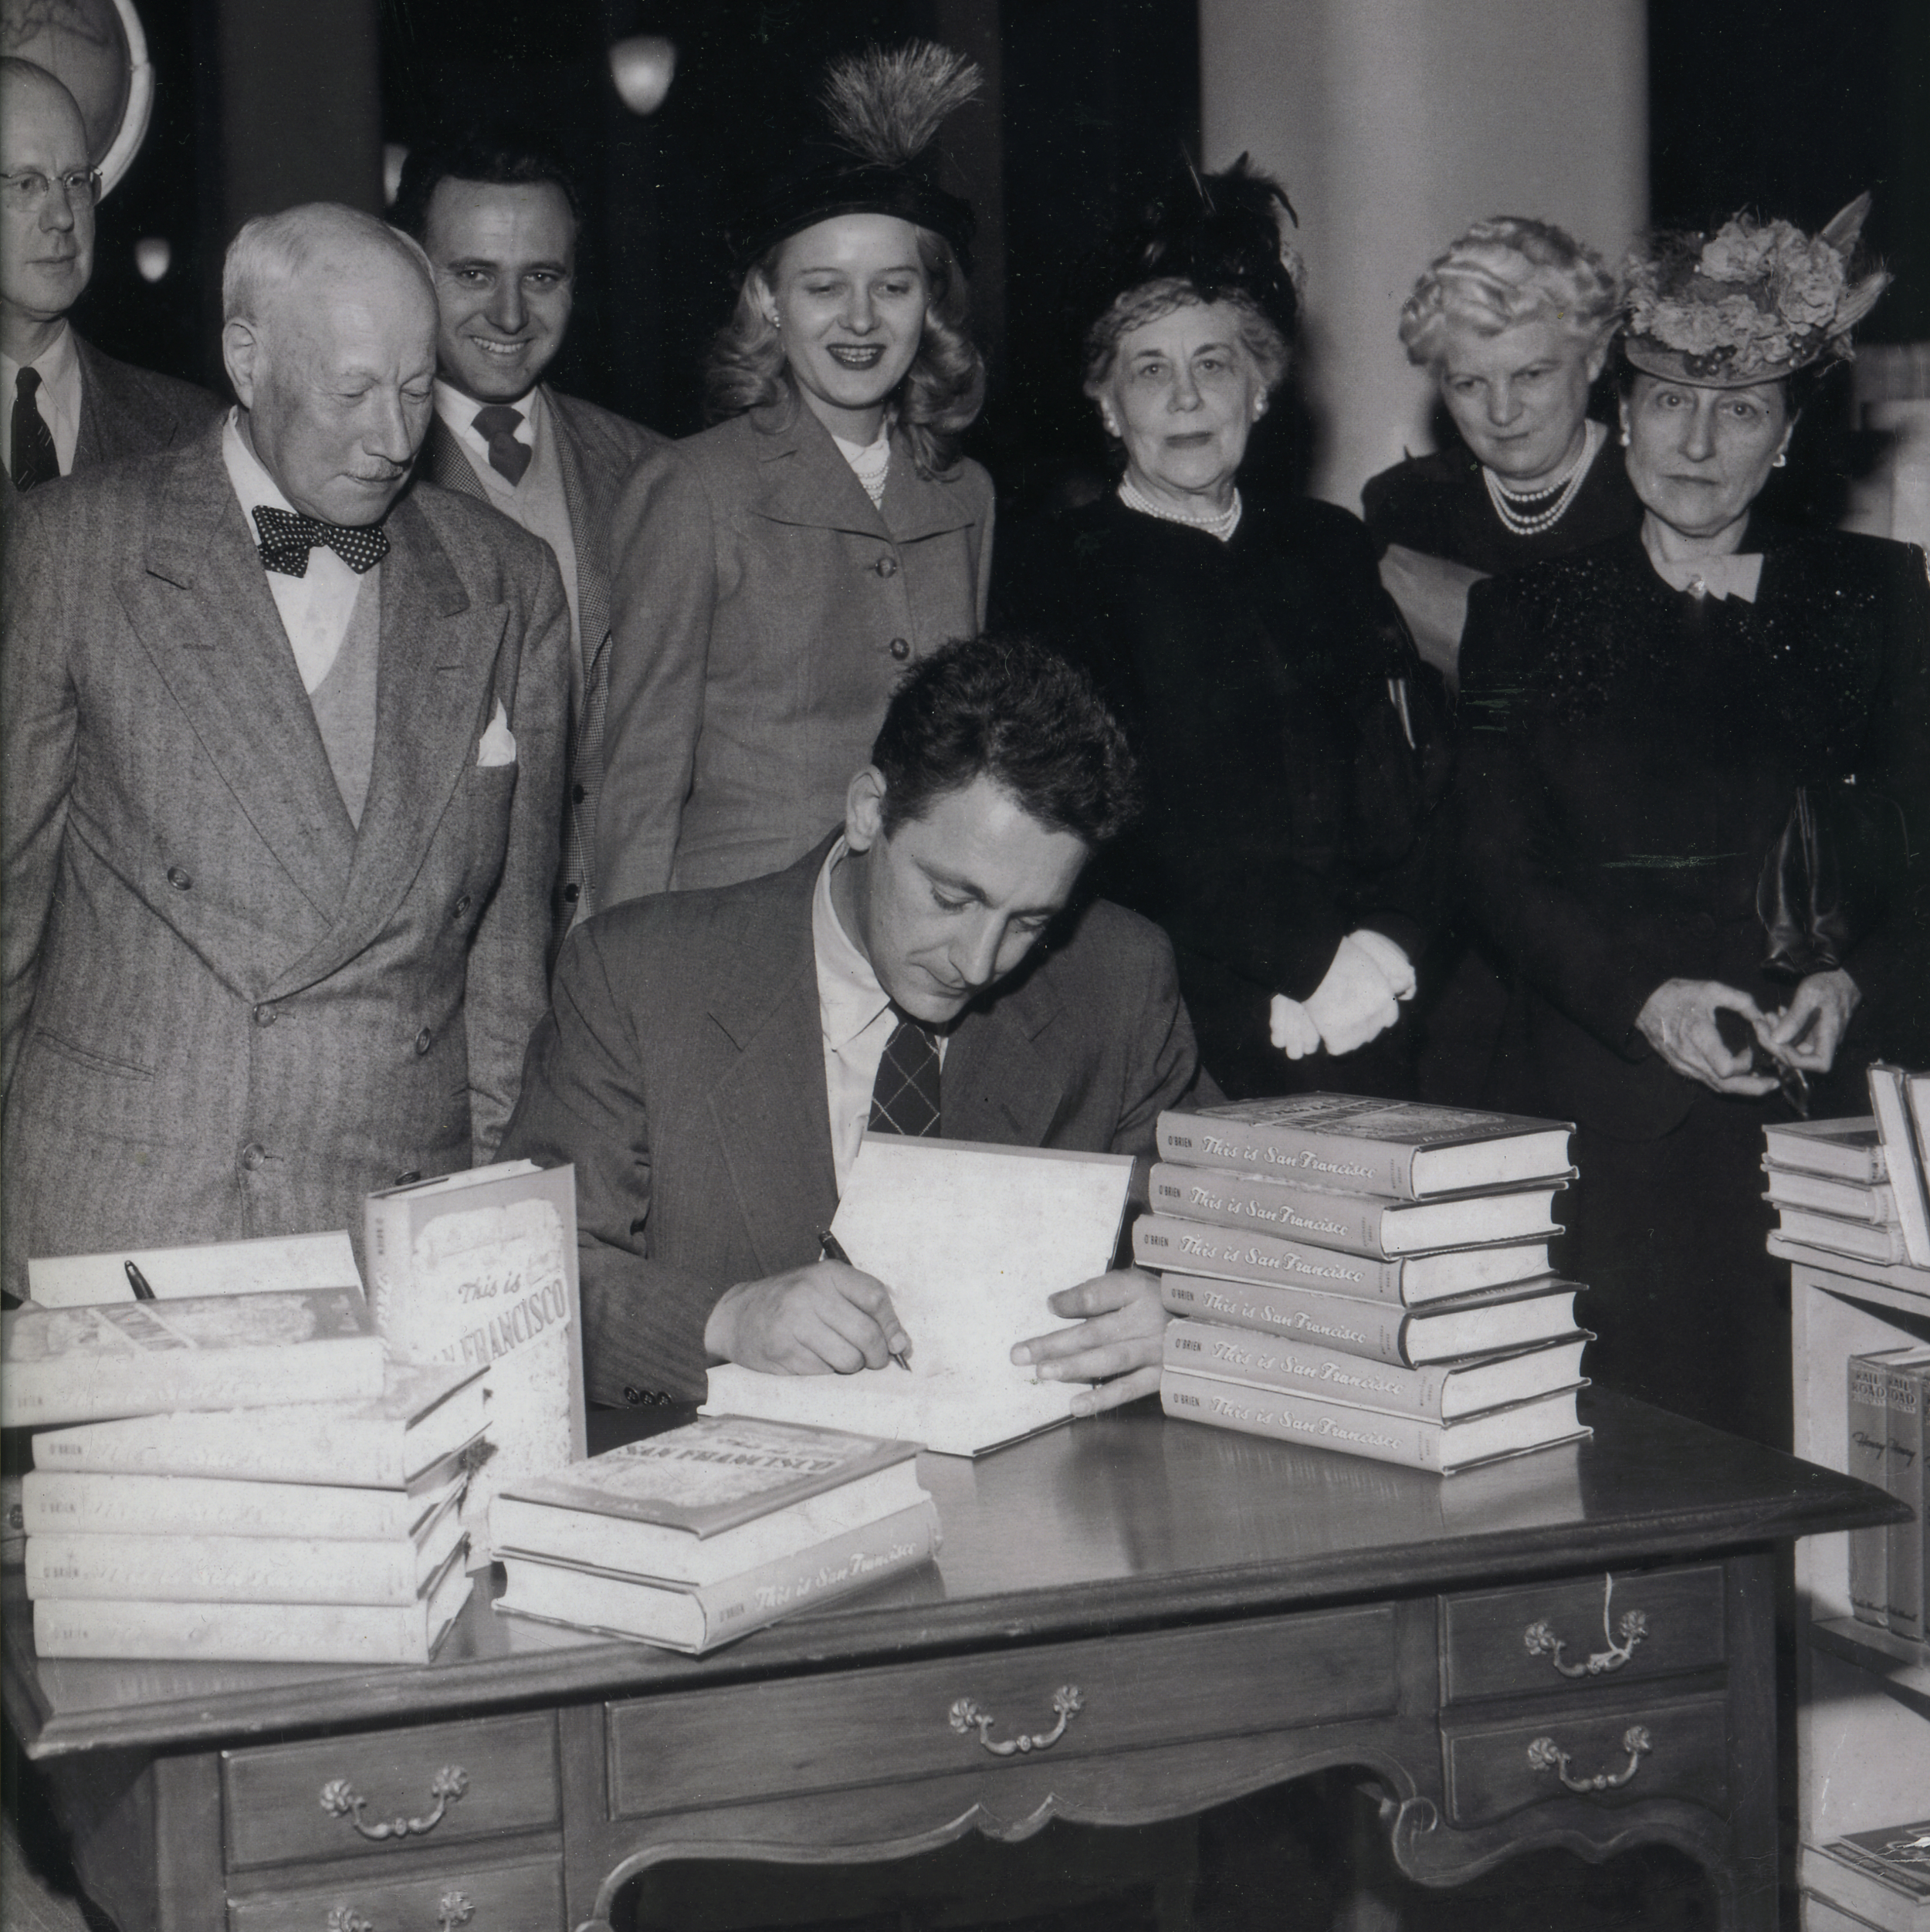 Robert O'Brien signing his book   This Is San Francisco  , circa 1950. Check out the hats—the ladies LOVED feathers!